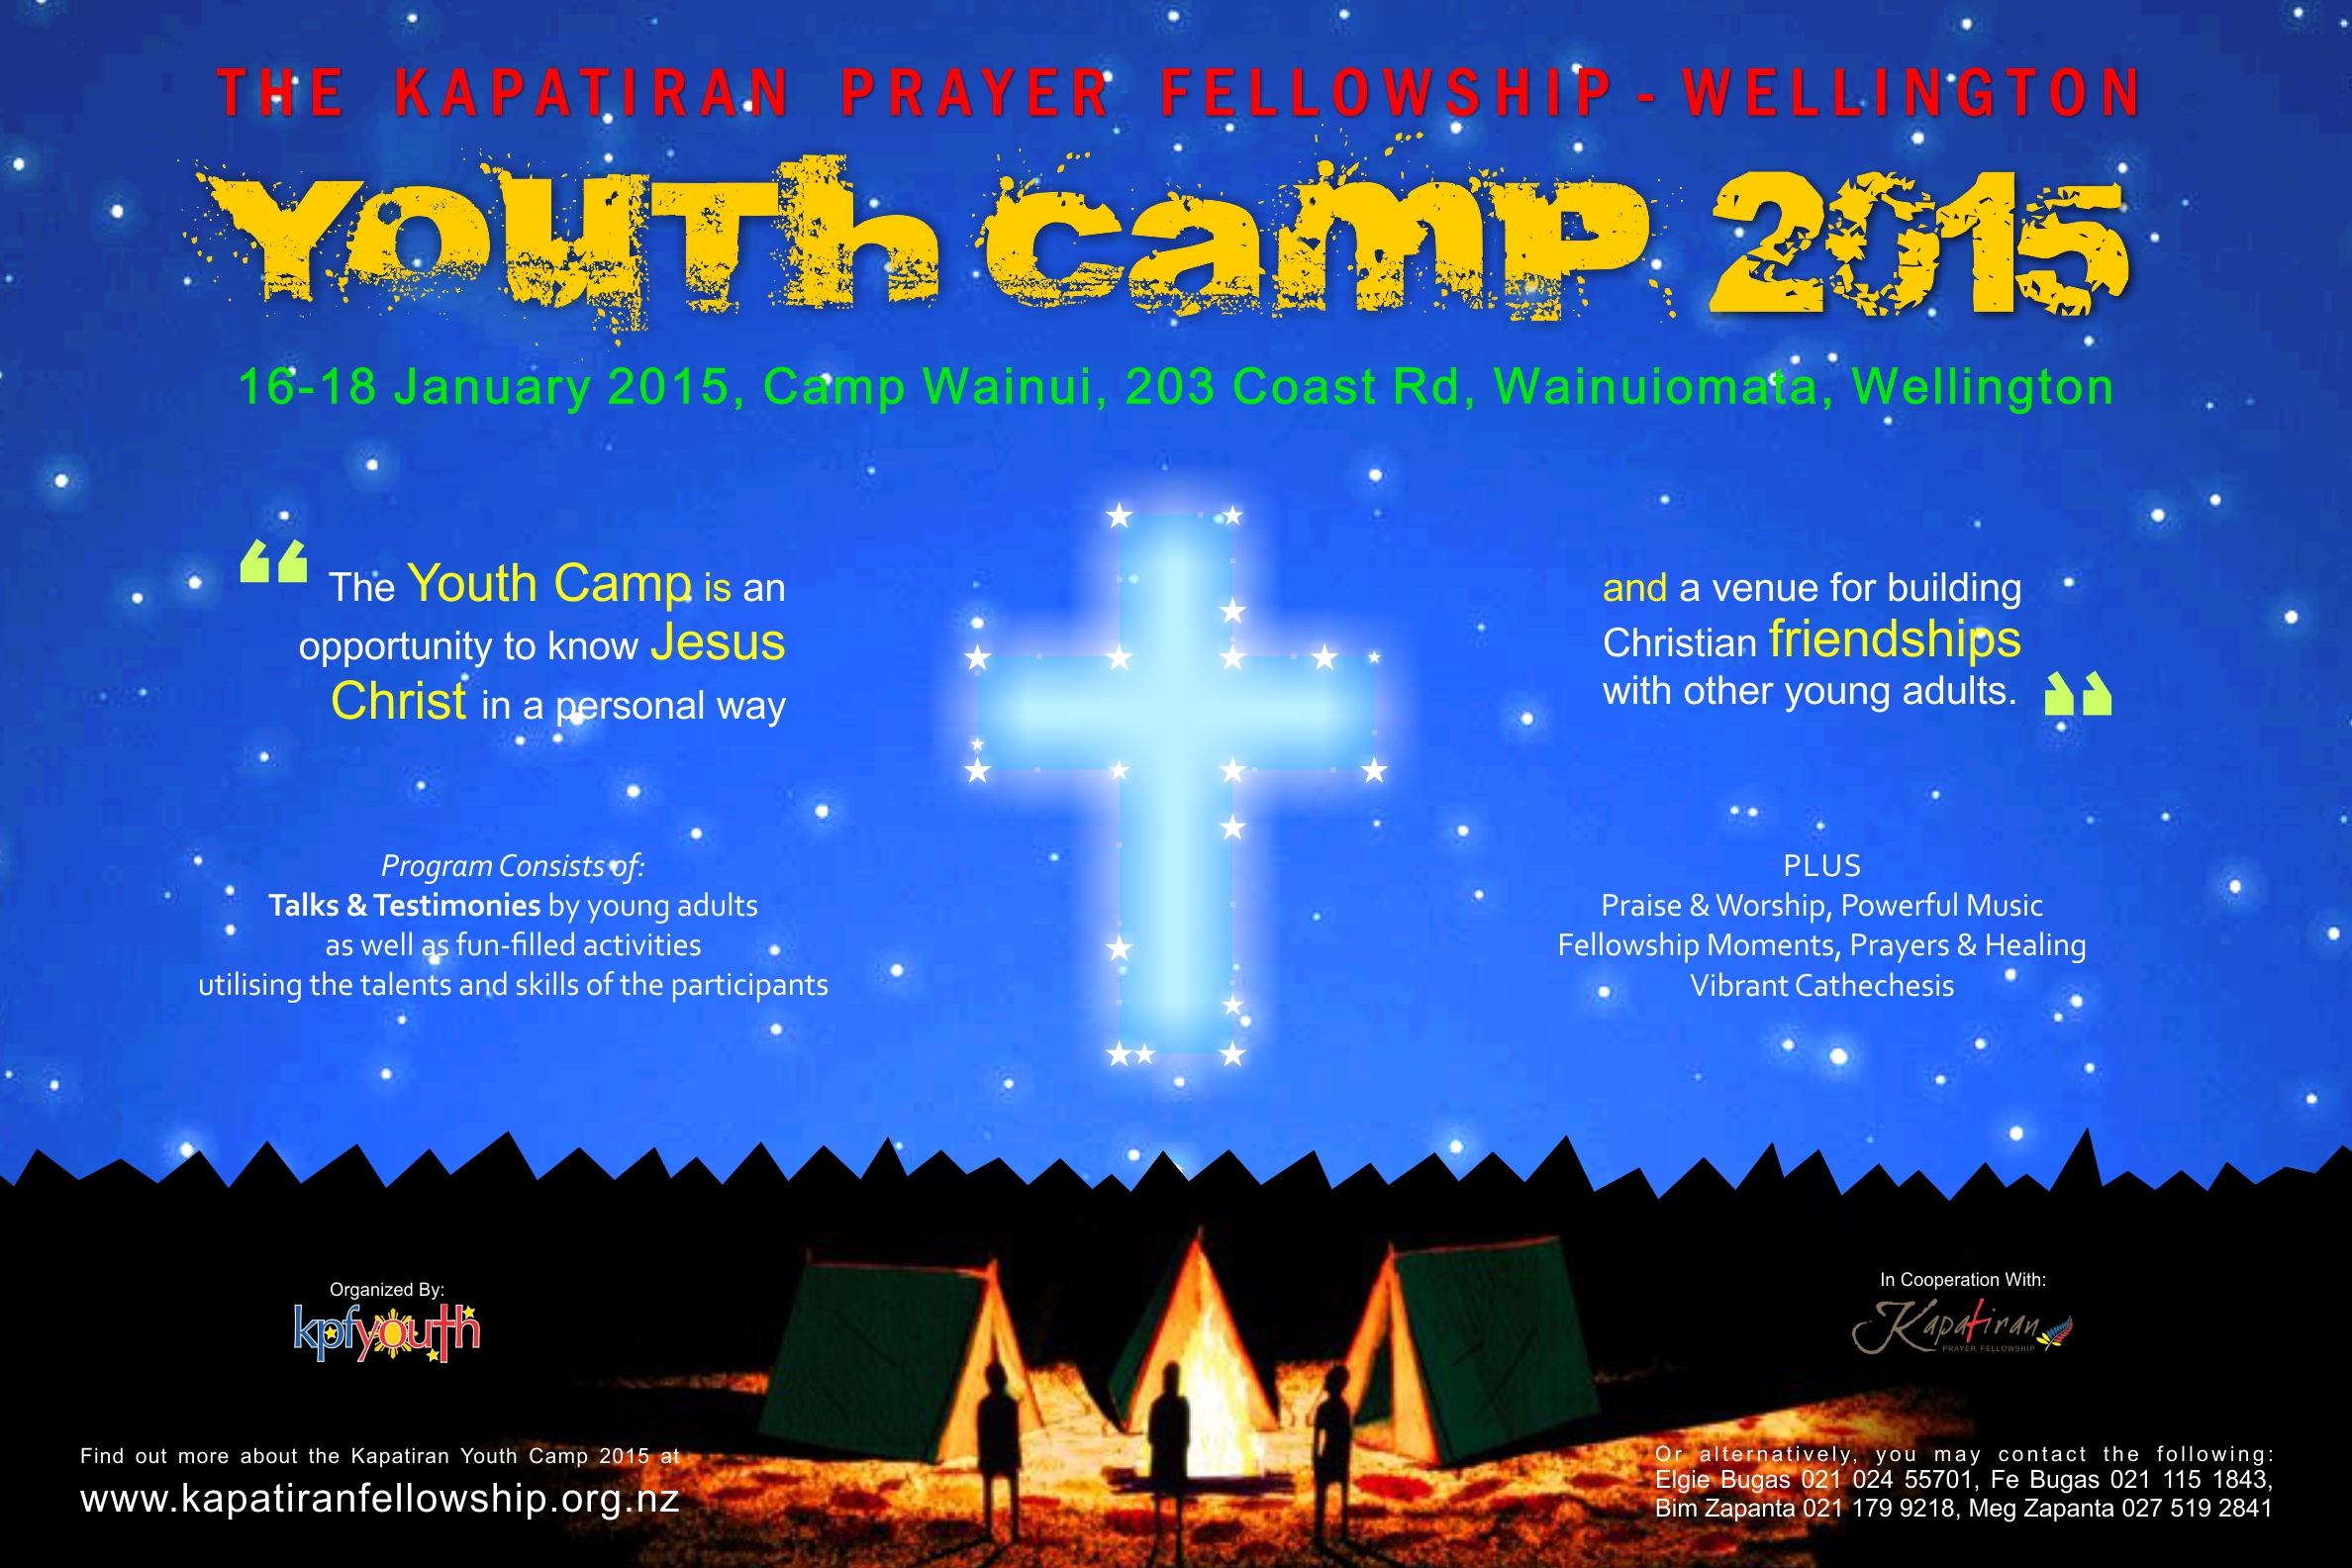 Poster design 2015 - Kpf Wlg Youth Camp Poster Design 2015 Web